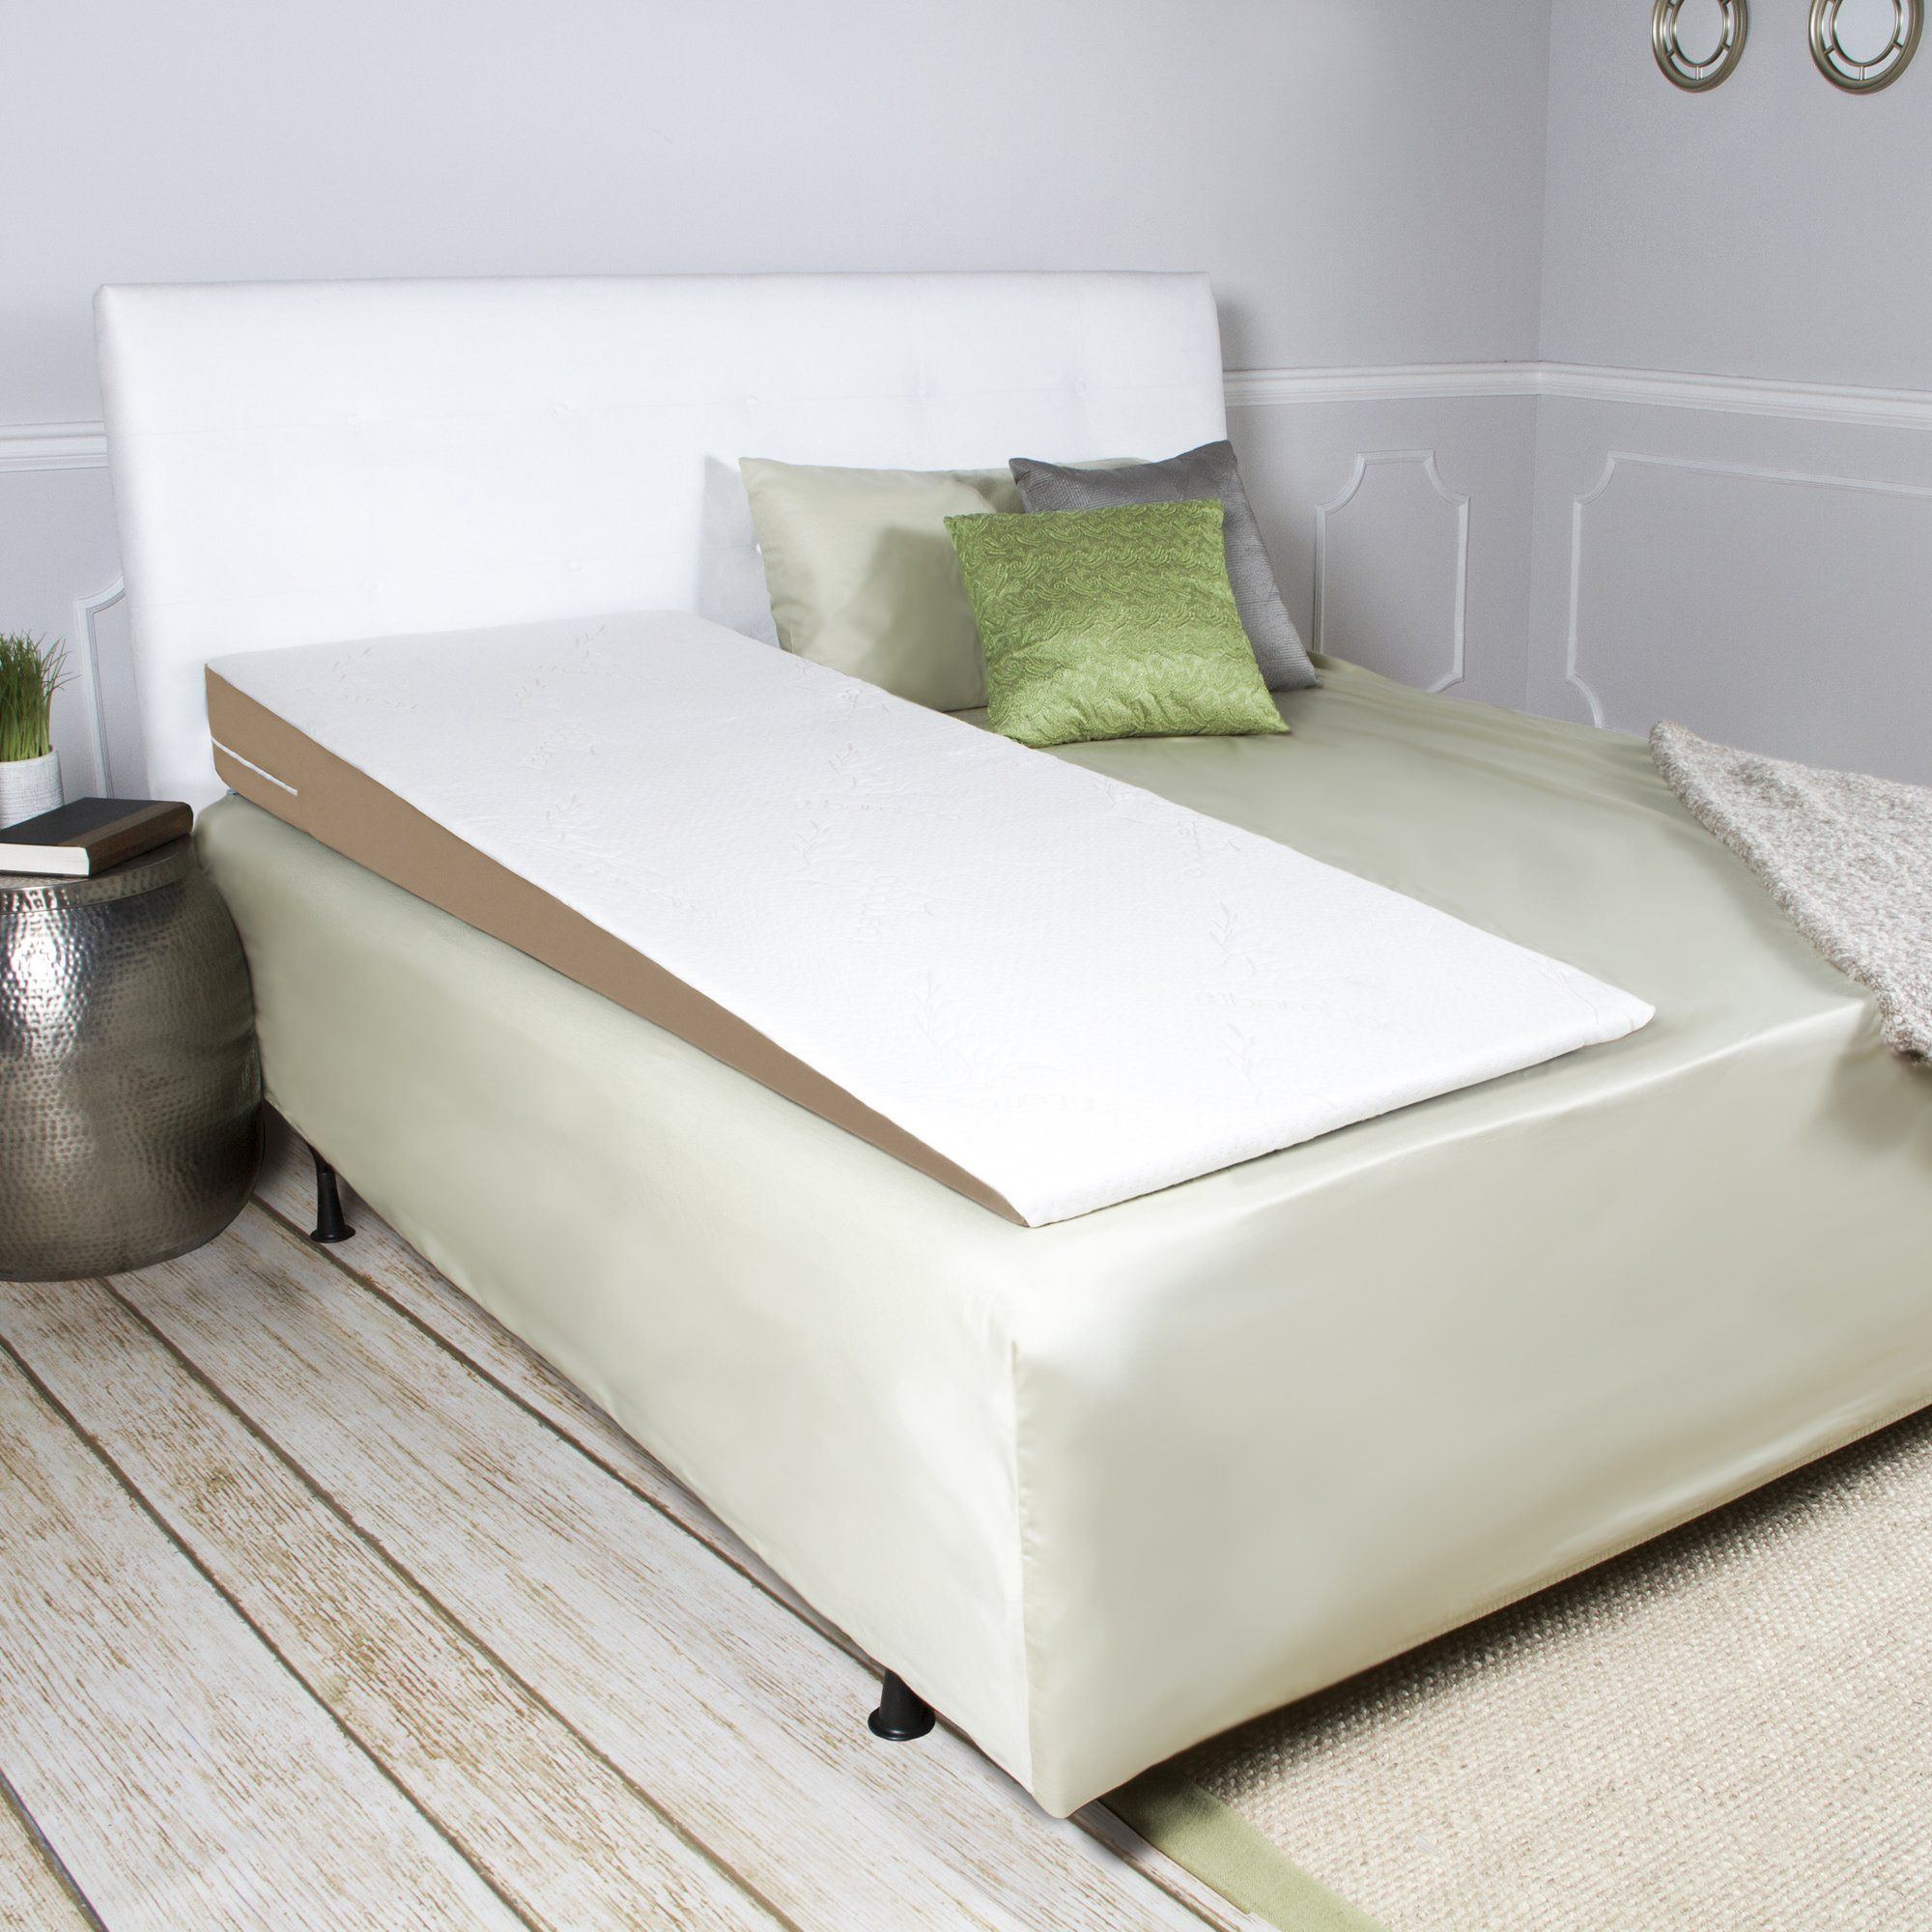 Avana Superslant Full Length Bed Wedge Pillow With Bamboo Cover Halfqueen Click On